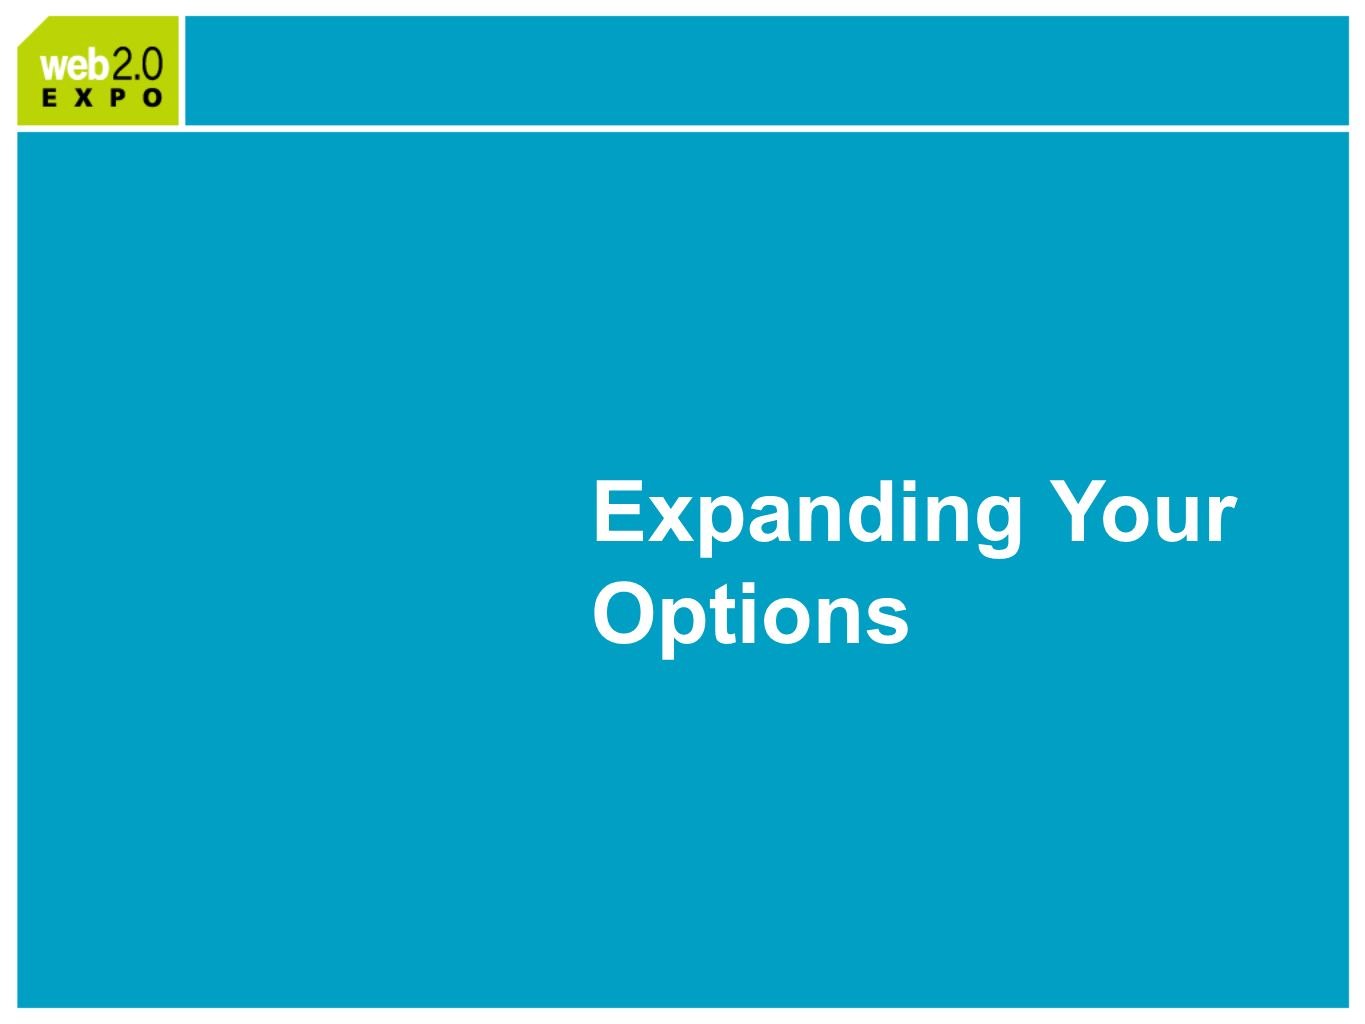 Expanding Your Options